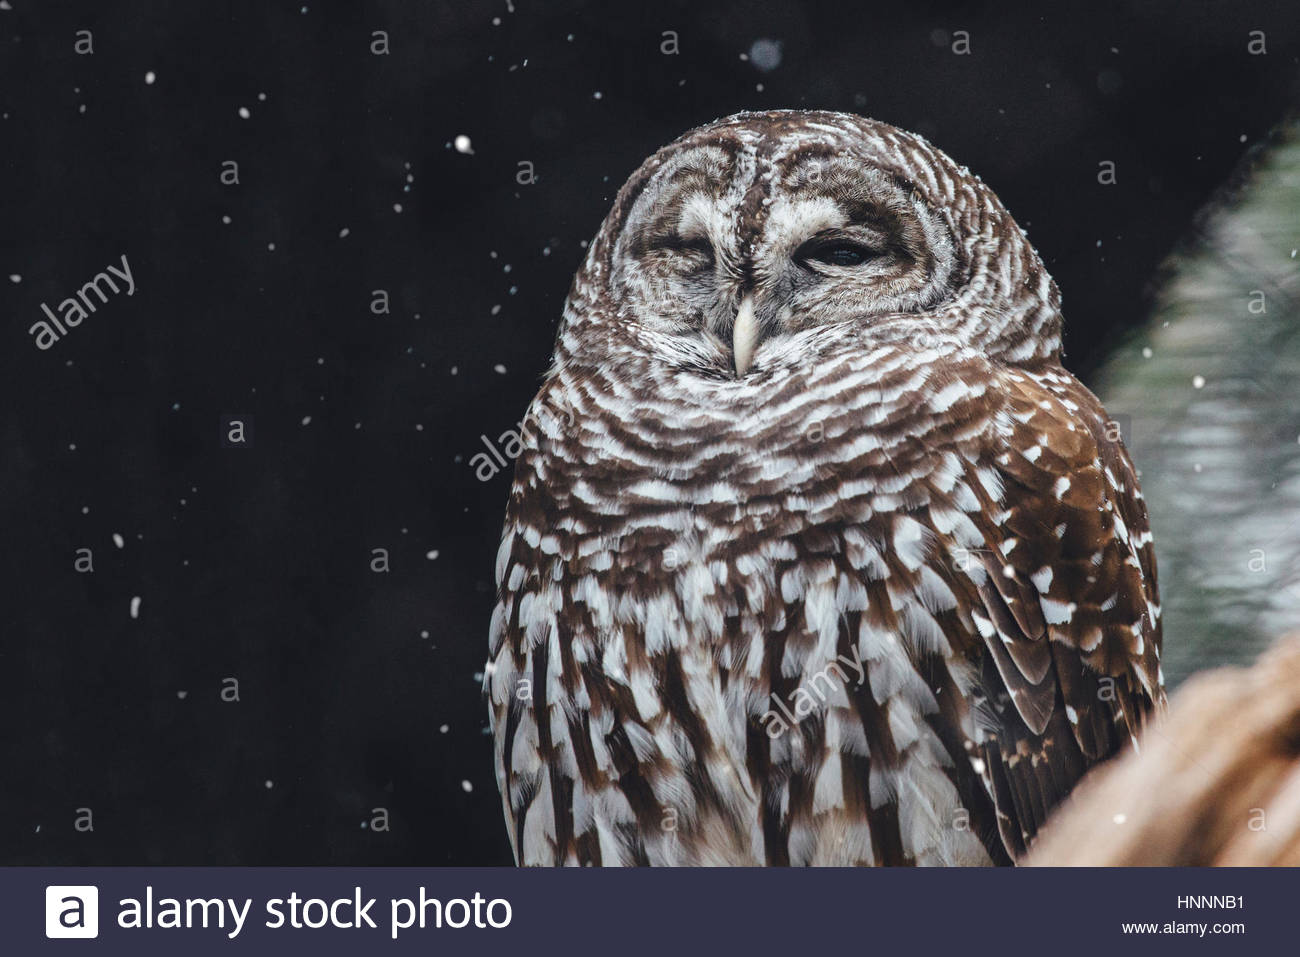 Close-up of owl during snow fall - Stock Image